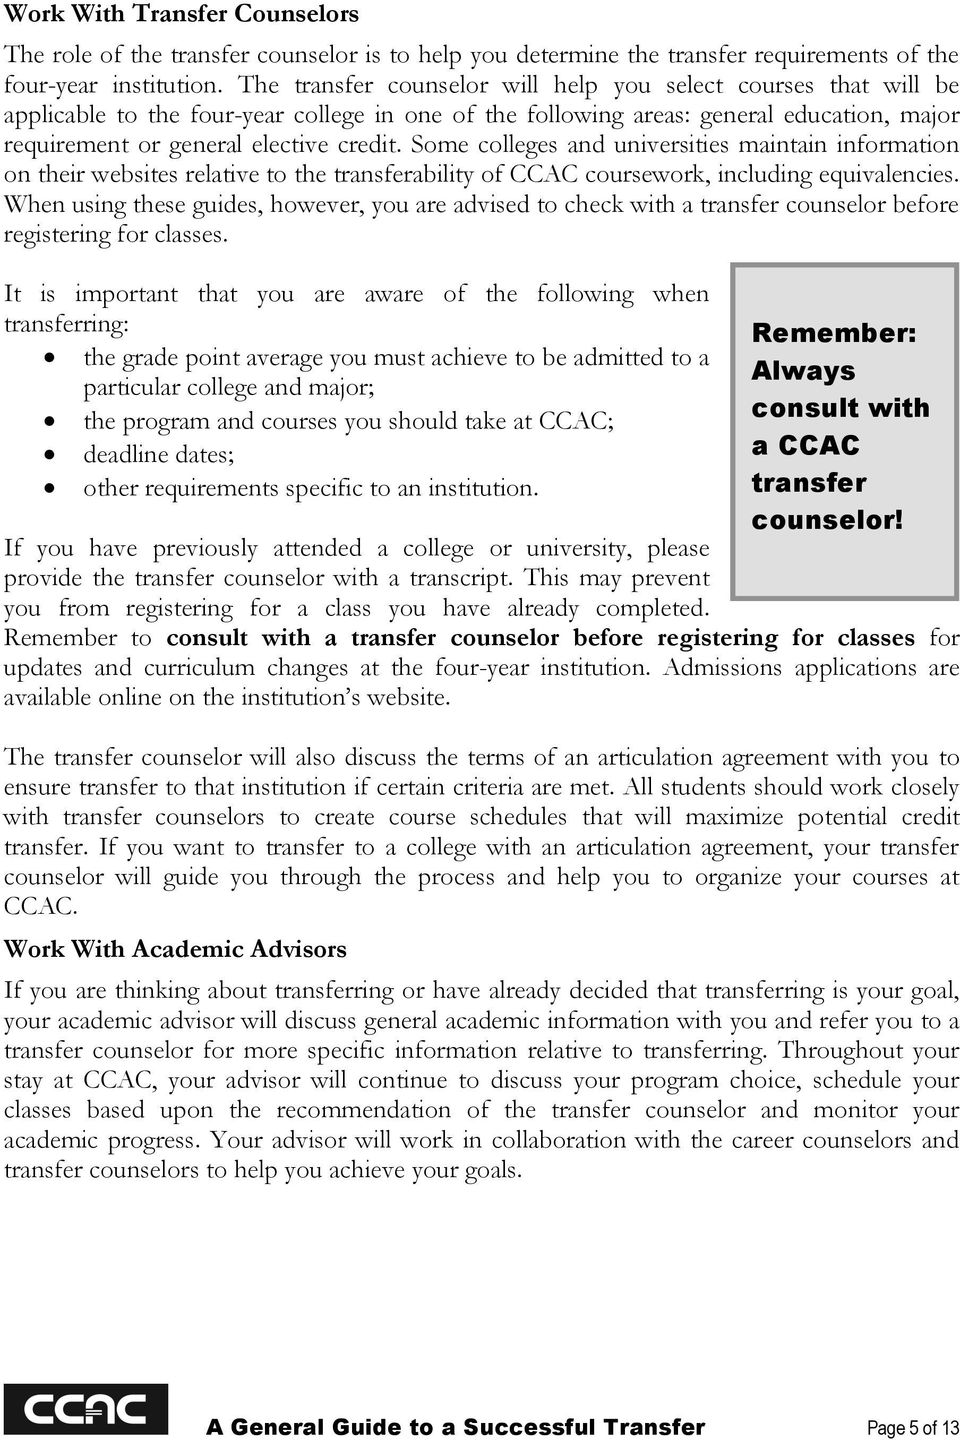 Some colleges and universities maintain information on their websites relative to the transferability of CCAC coursework, including equivalencies.